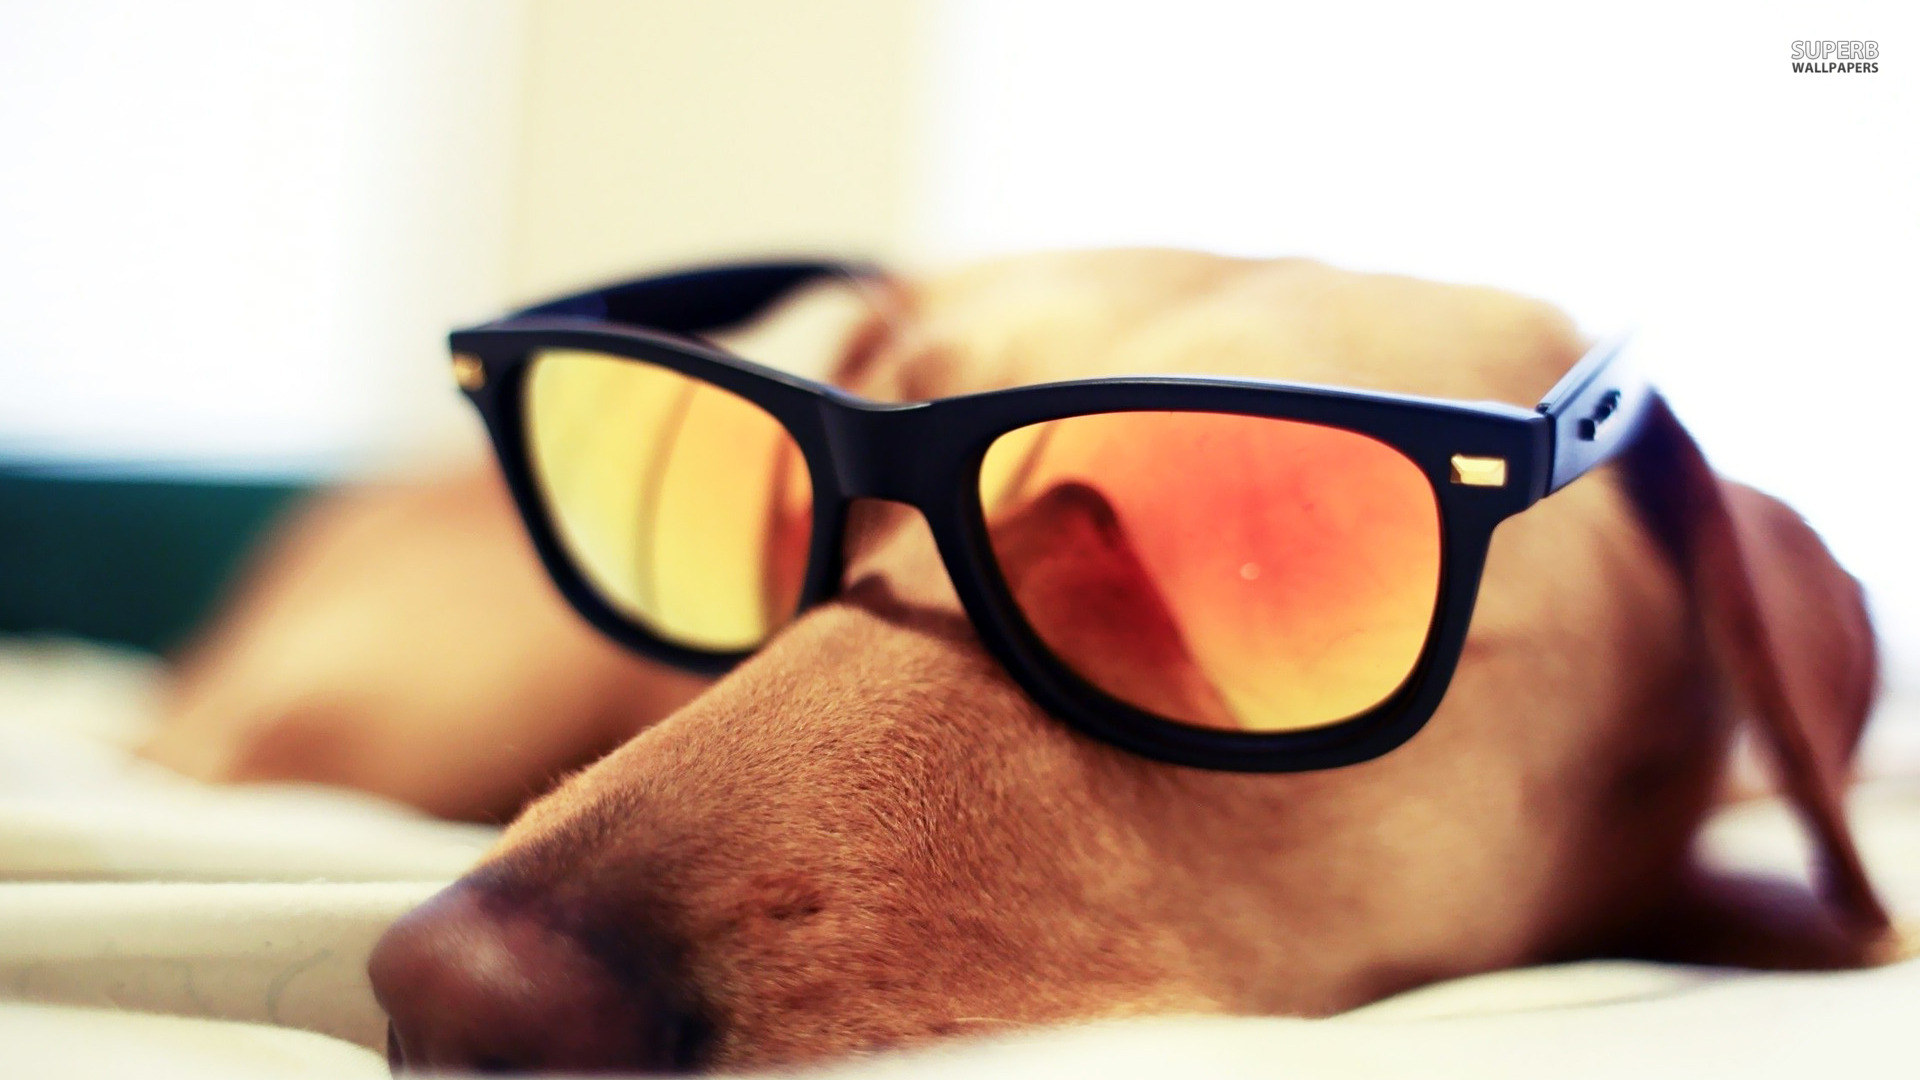 Dog sleeping with sunglasses wallpaper 1920x1080